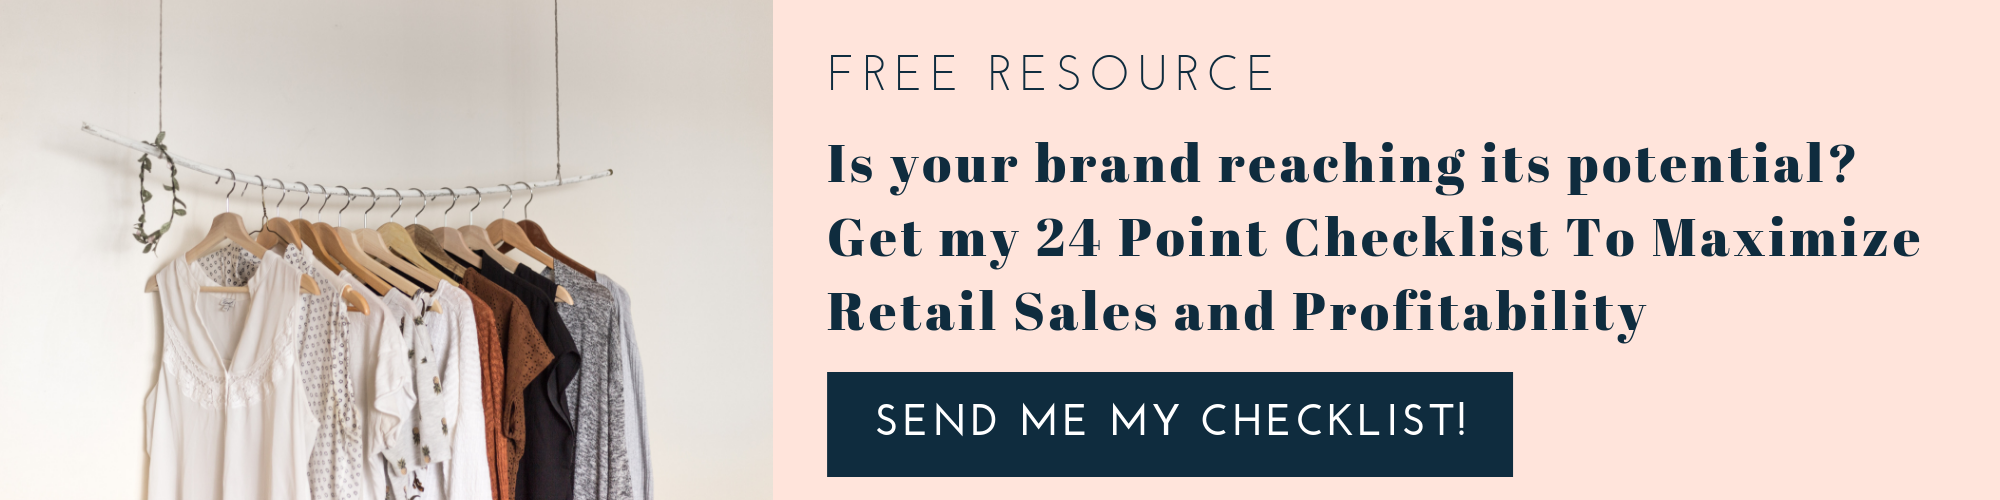 Get my 24 Point Checklist to Maximize Retail Sales and Profitability